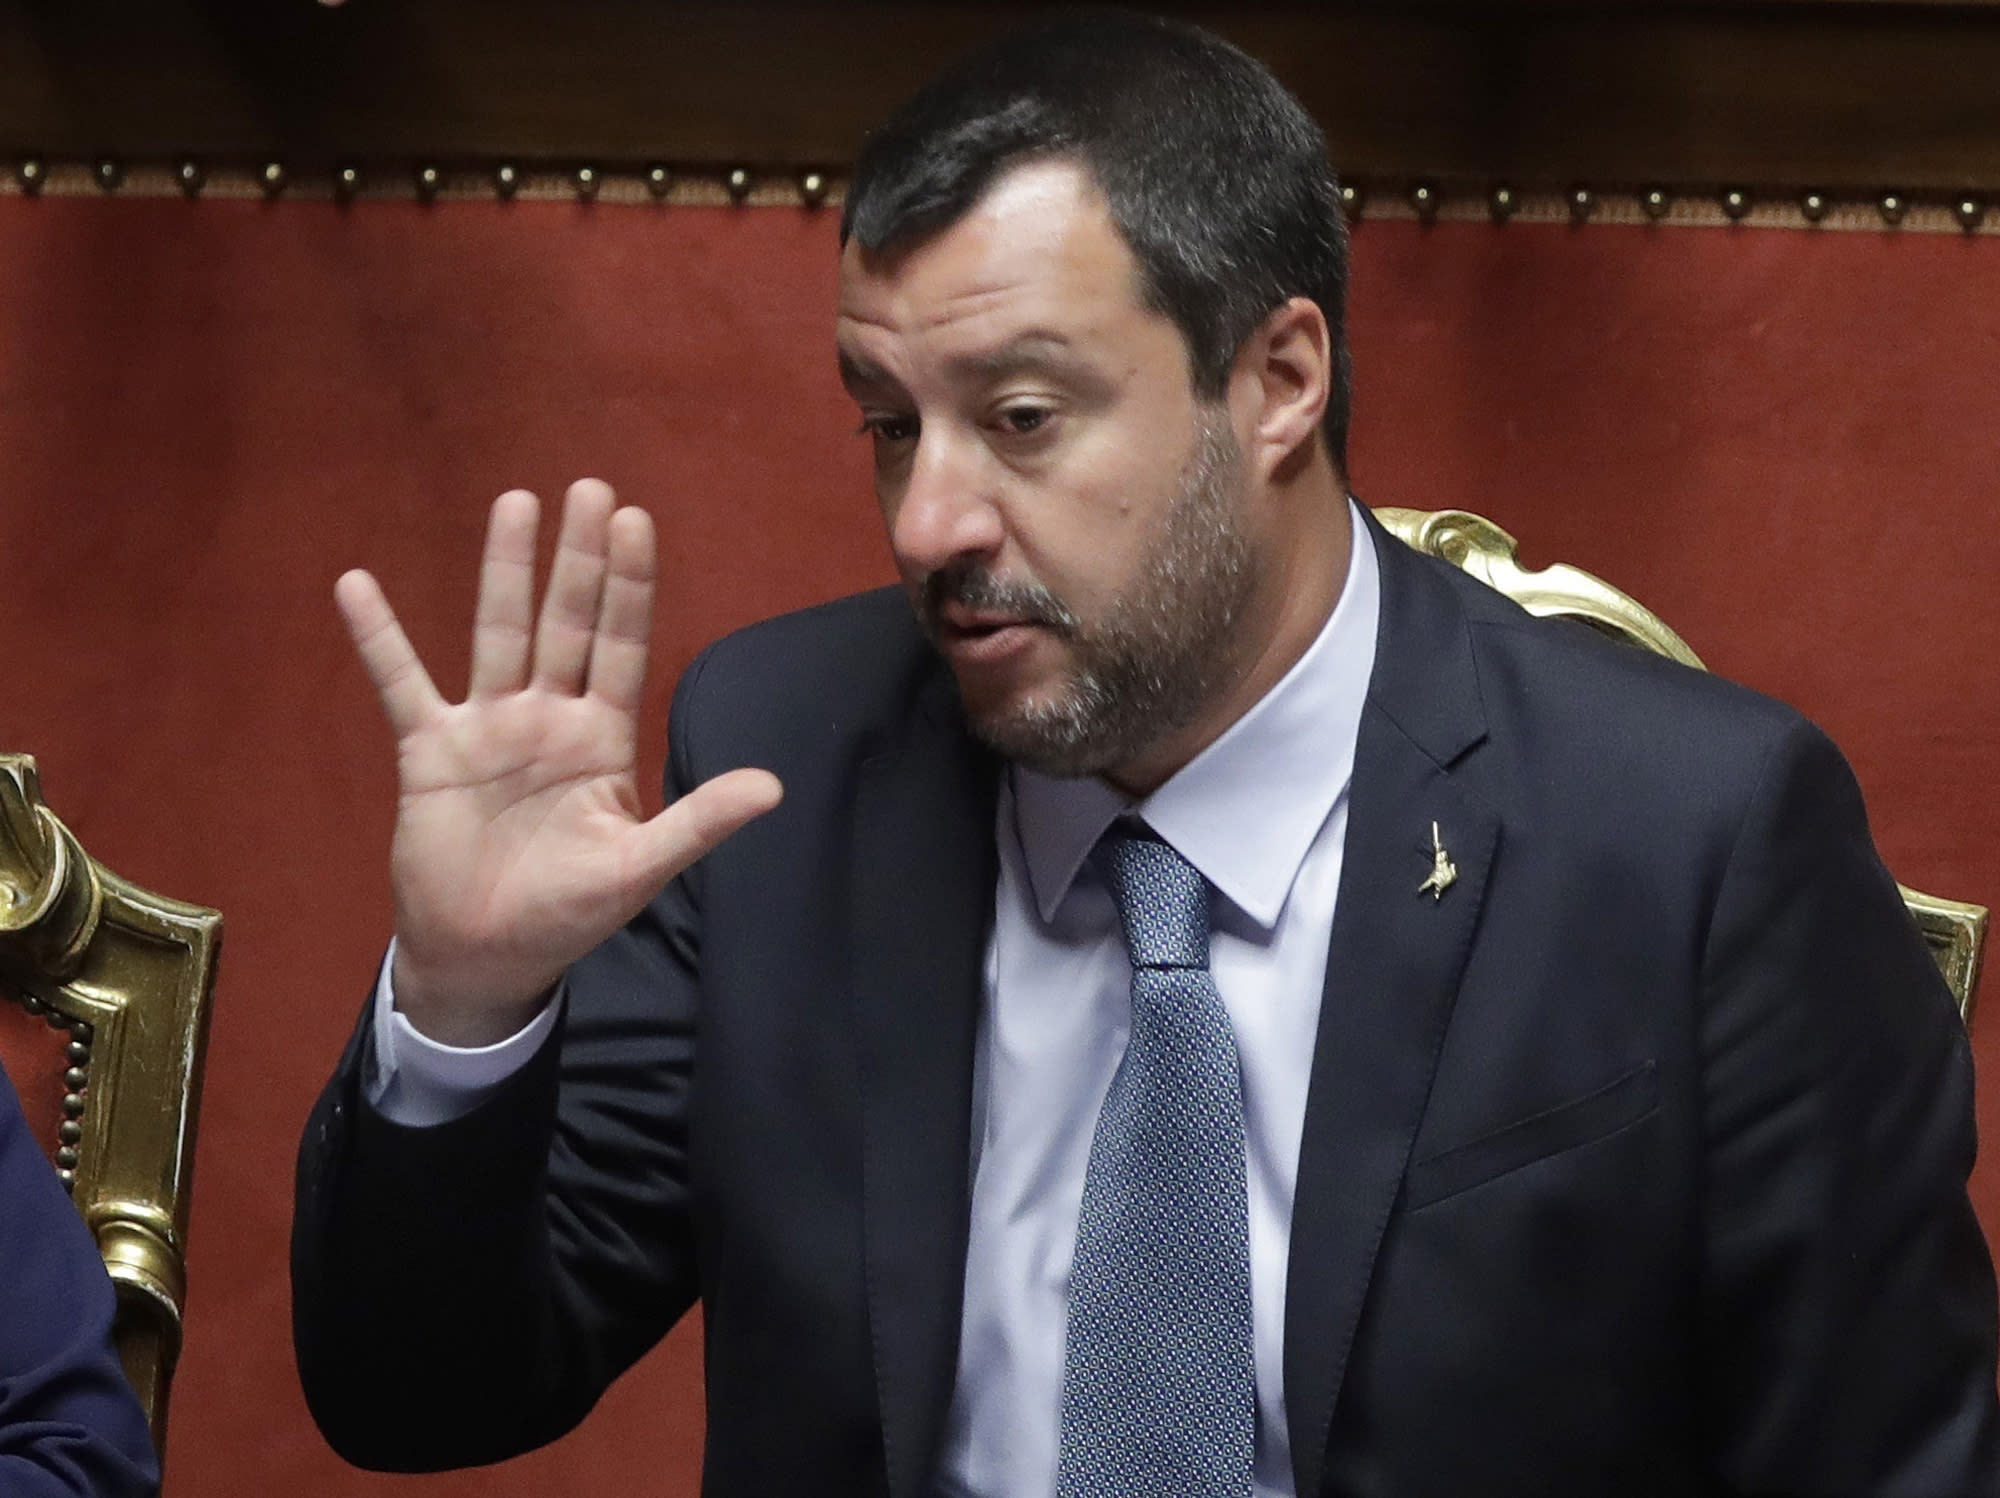 FILE - In this March 20, 2019, photo, Italian Interior Minister and Vice Premier Matteo Salvini gestures at the Italian Senate in Rome. Migrants hijacked a cargo ship in Libyan waters on Wednesday March 27, 2019, and have forced the crew to reroute the vessel north toward Europe, and Italian Interior Minister Salvini said the ship, was carrying around 120 migrants, but Italian authorities vowed they would not allow it into their territorial waters. (AP Photo/Alessandra Tarantino, File)